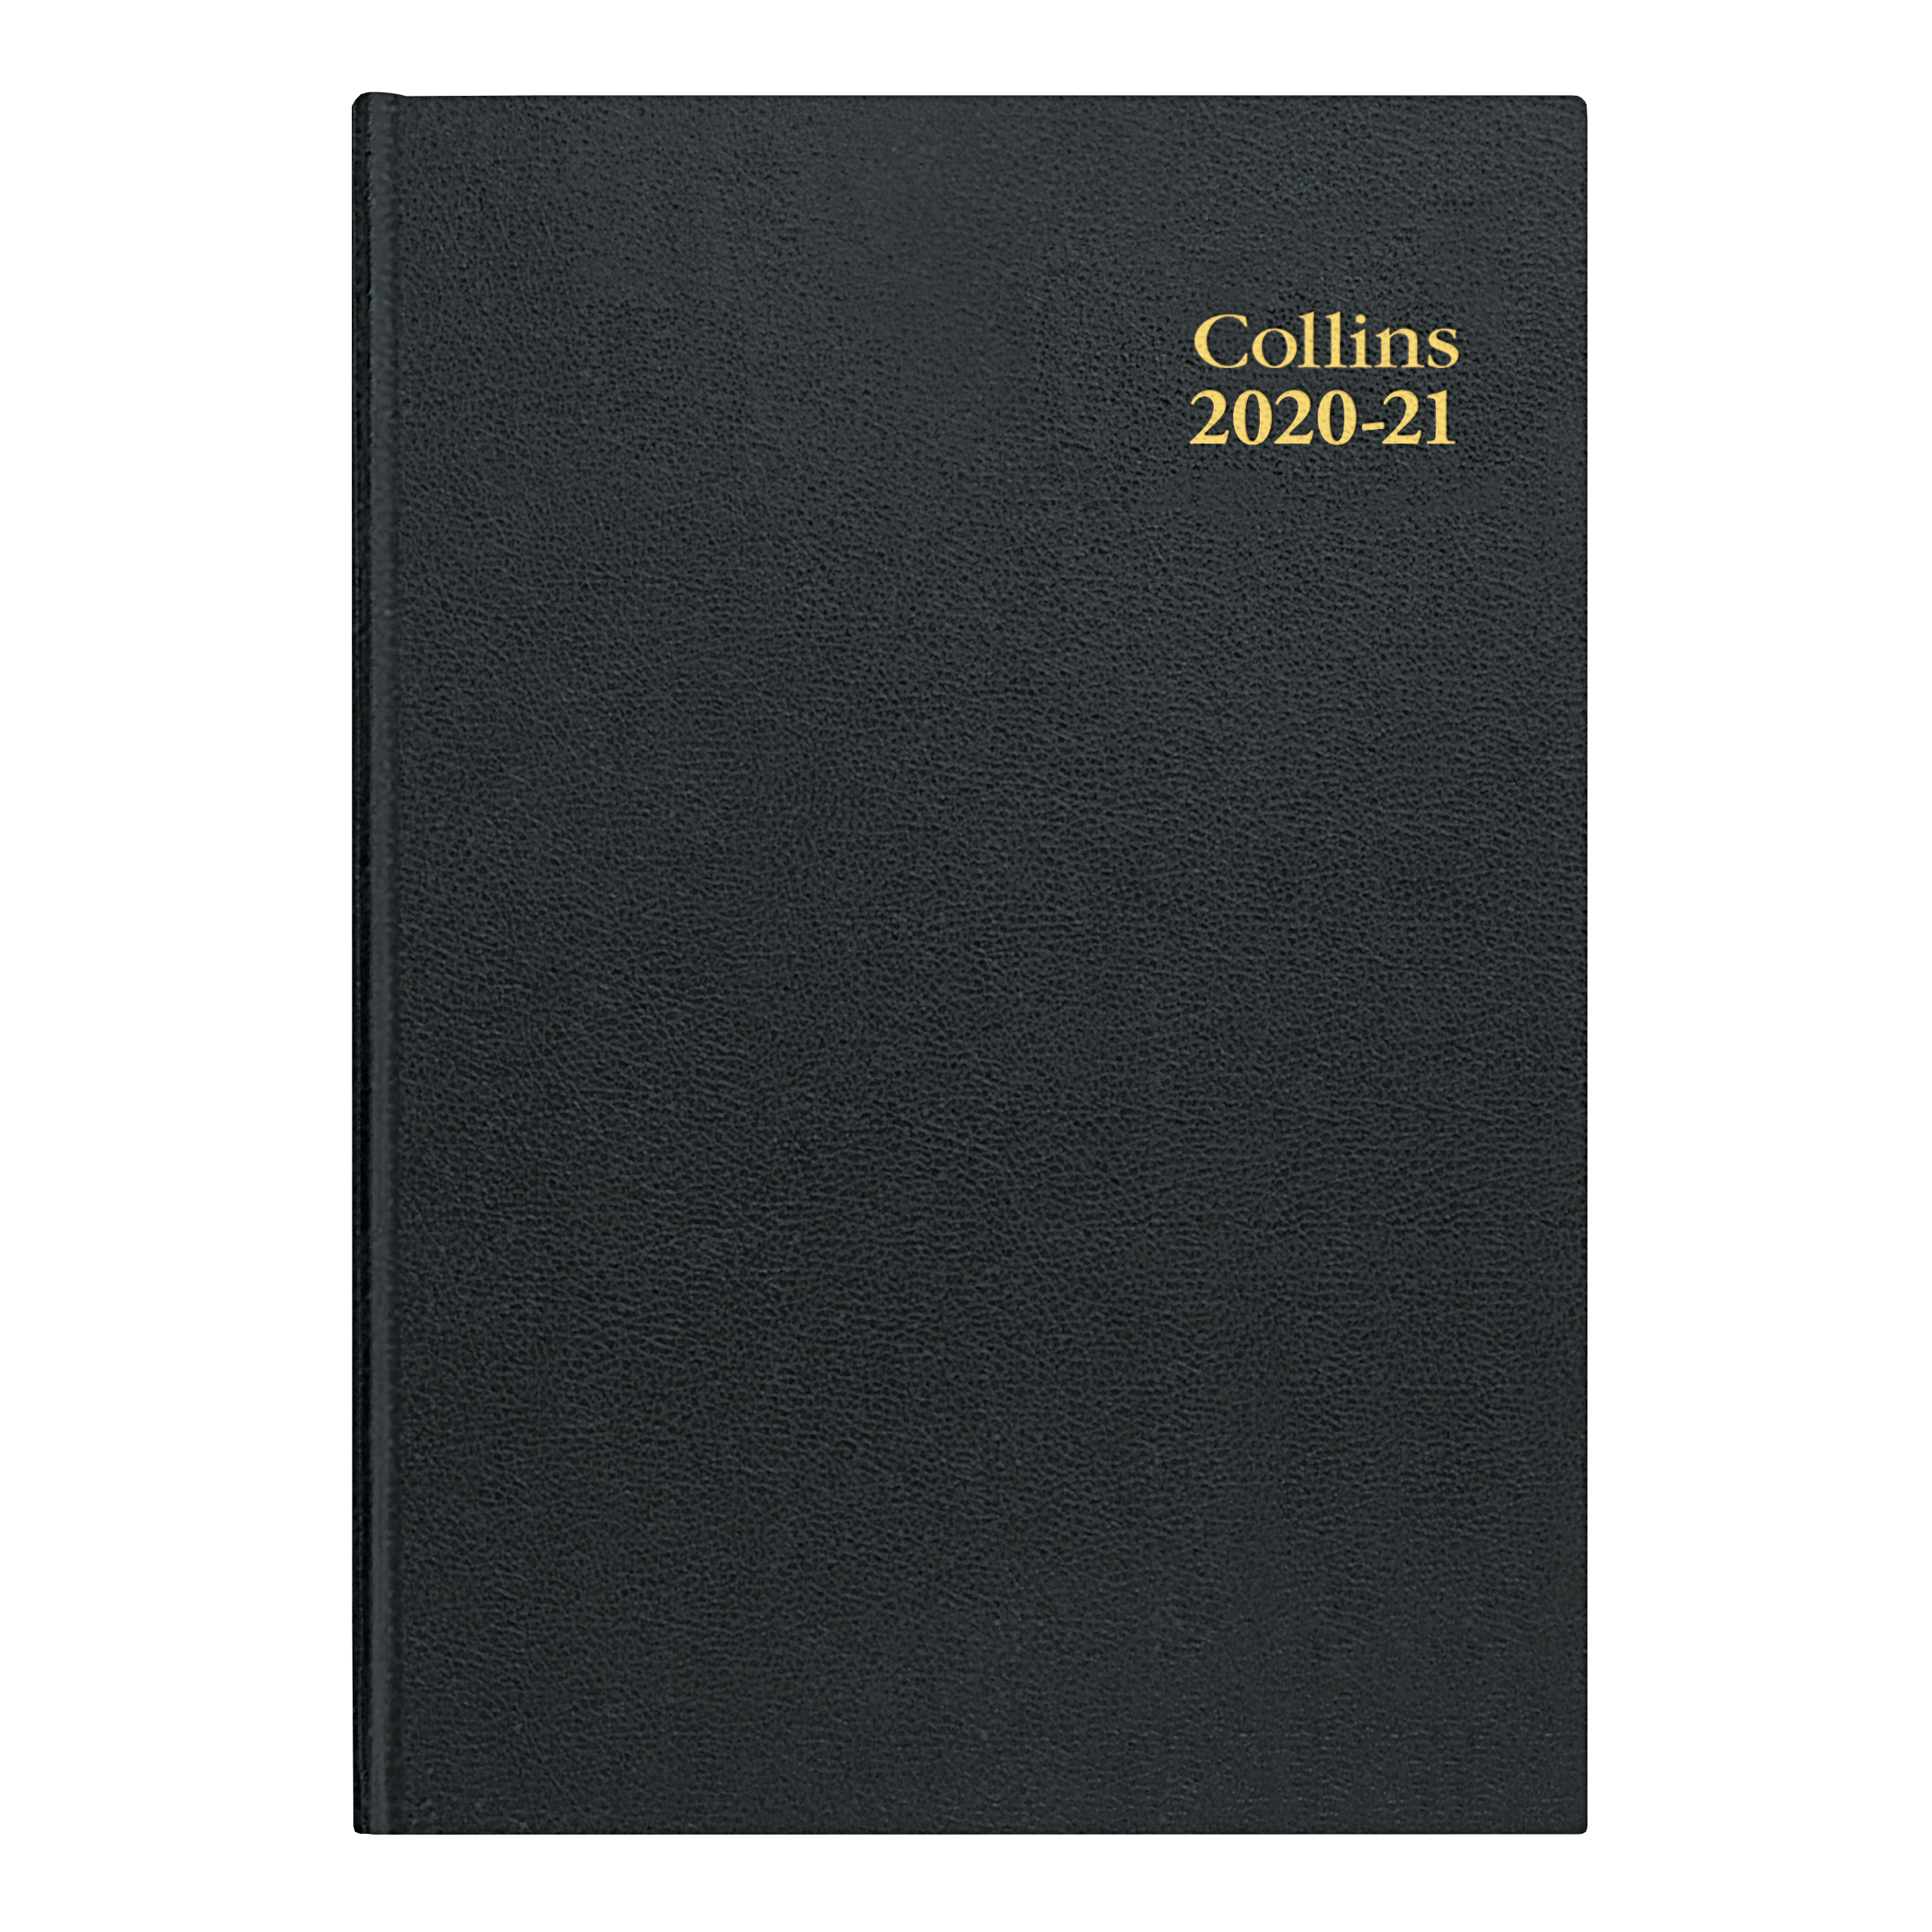 Diaries Collins 2020/21 Academic Diary Week-to-View A4 Black Ref 40M.99-2021